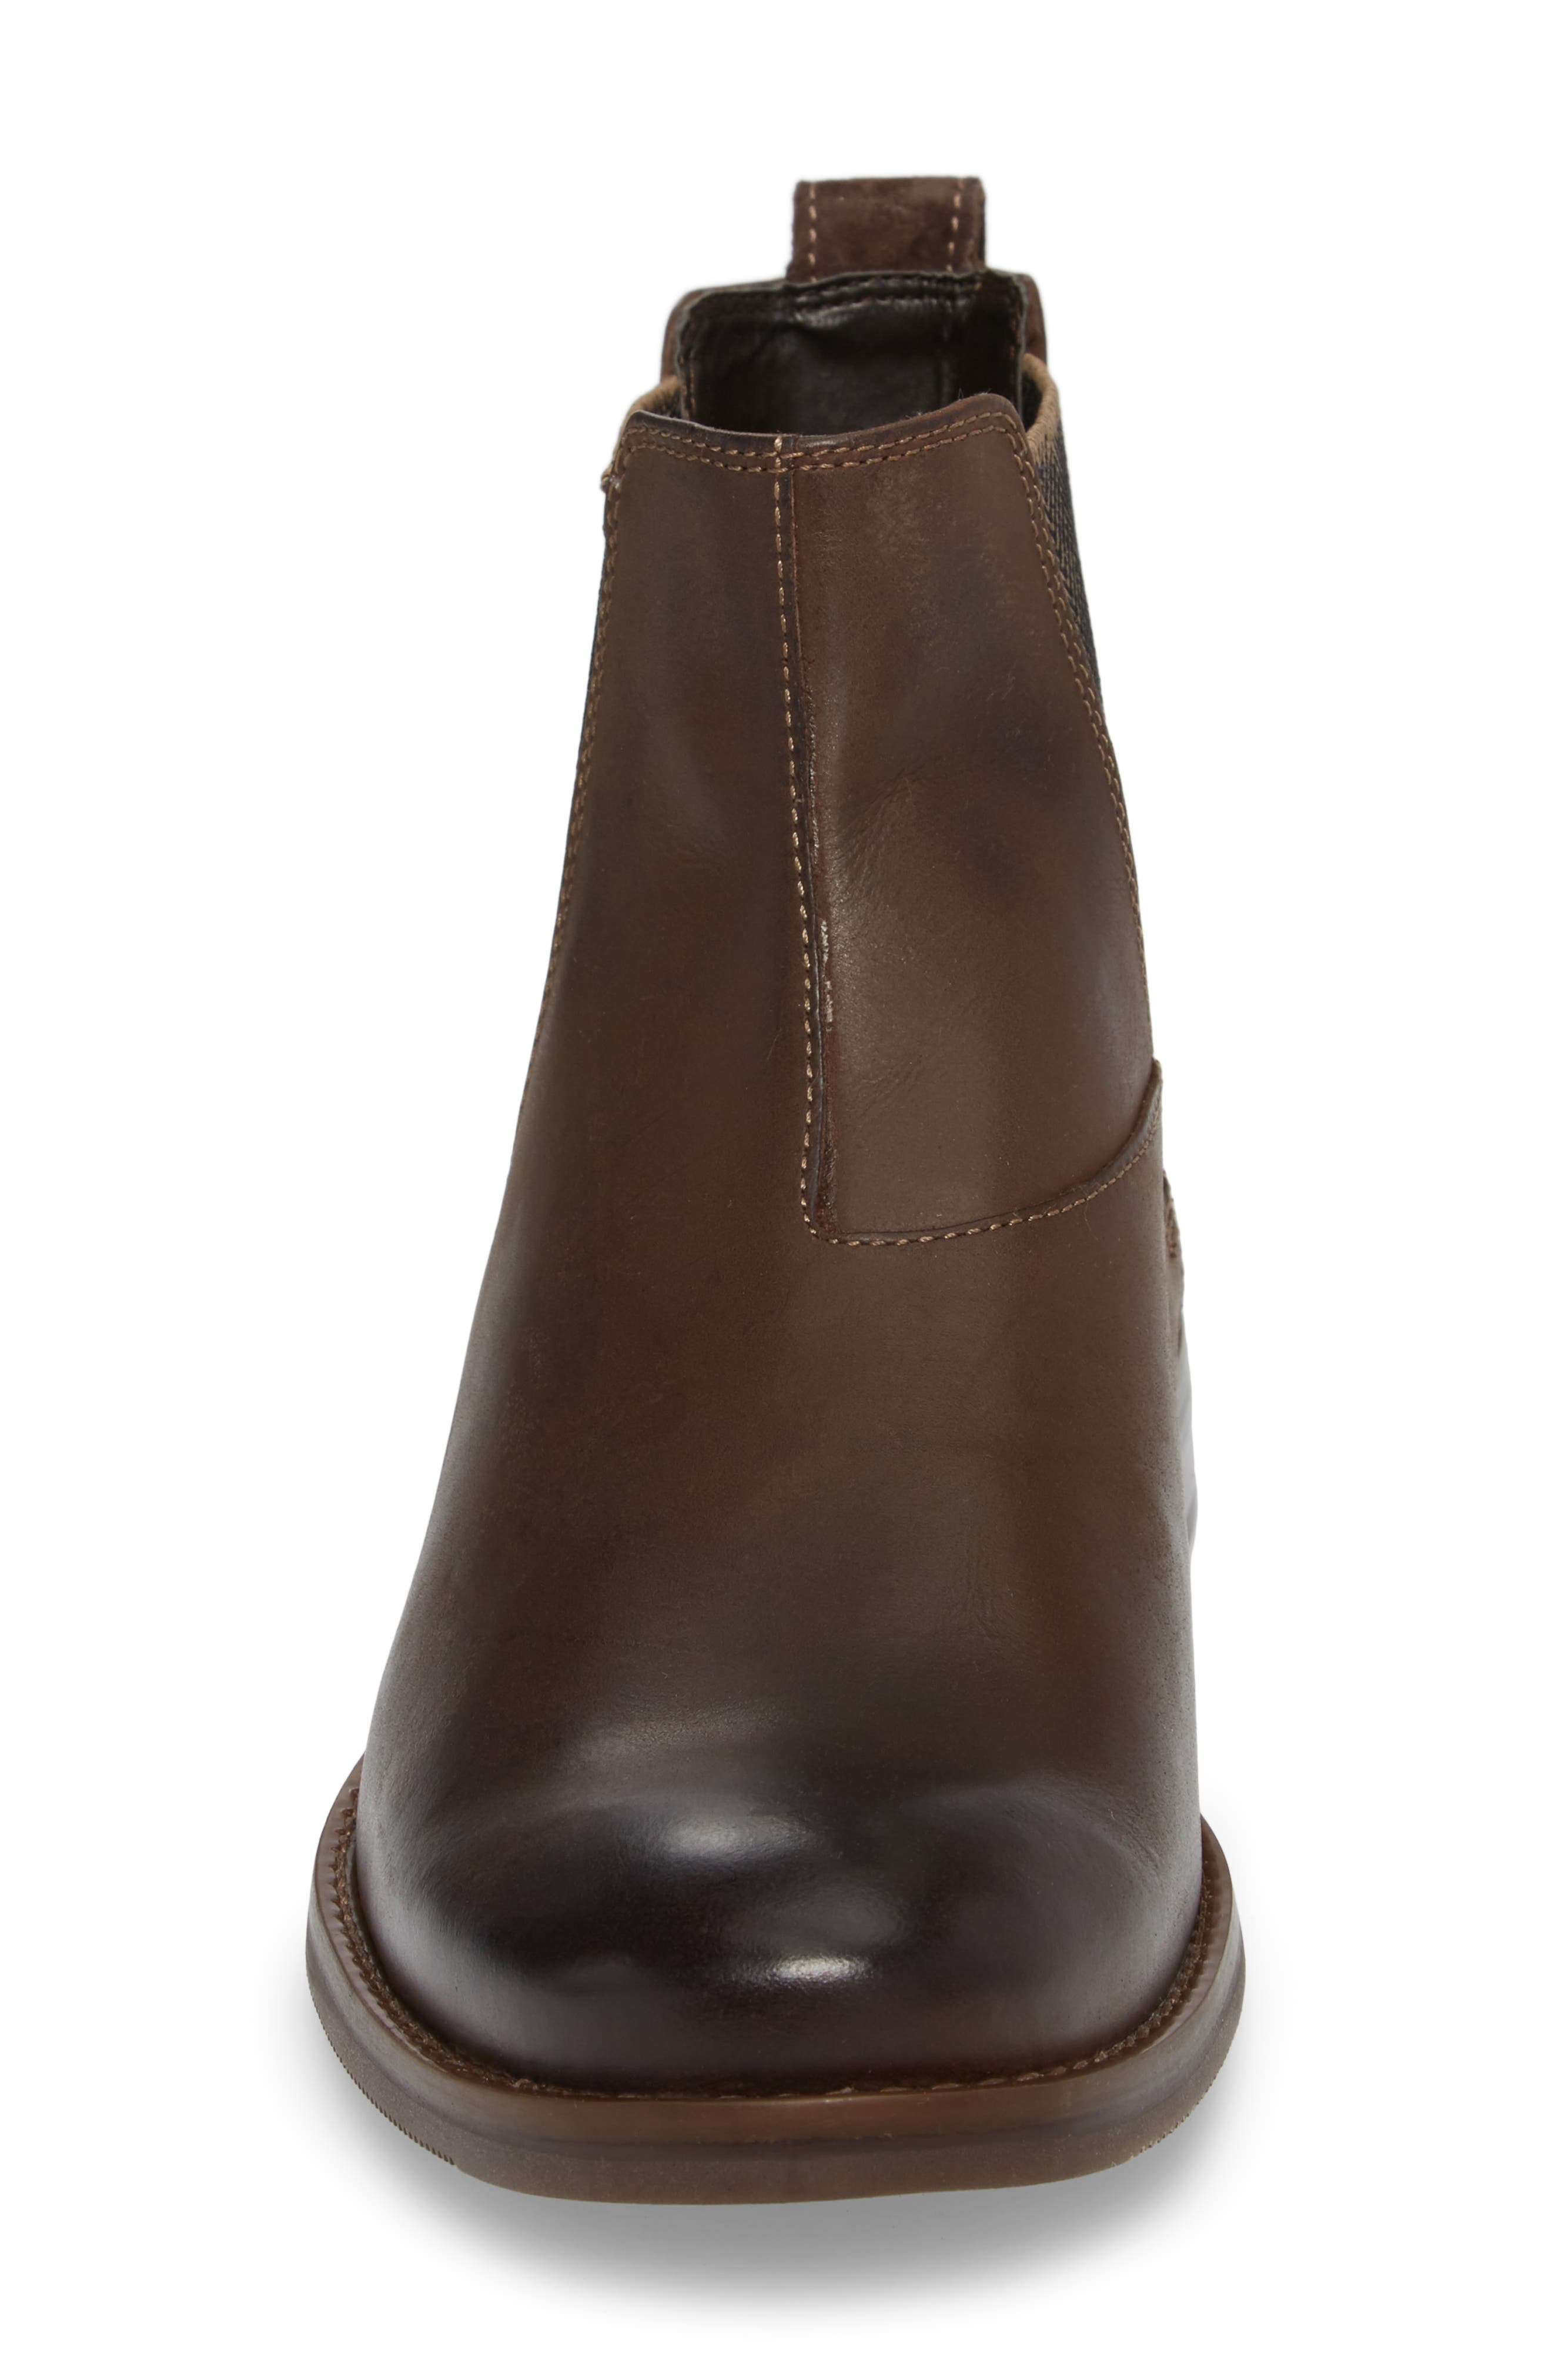 Wynstin Chelsea Boot,                             Alternate thumbnail 4, color,                             DARK BITTER CHOCOLATE LEATHER